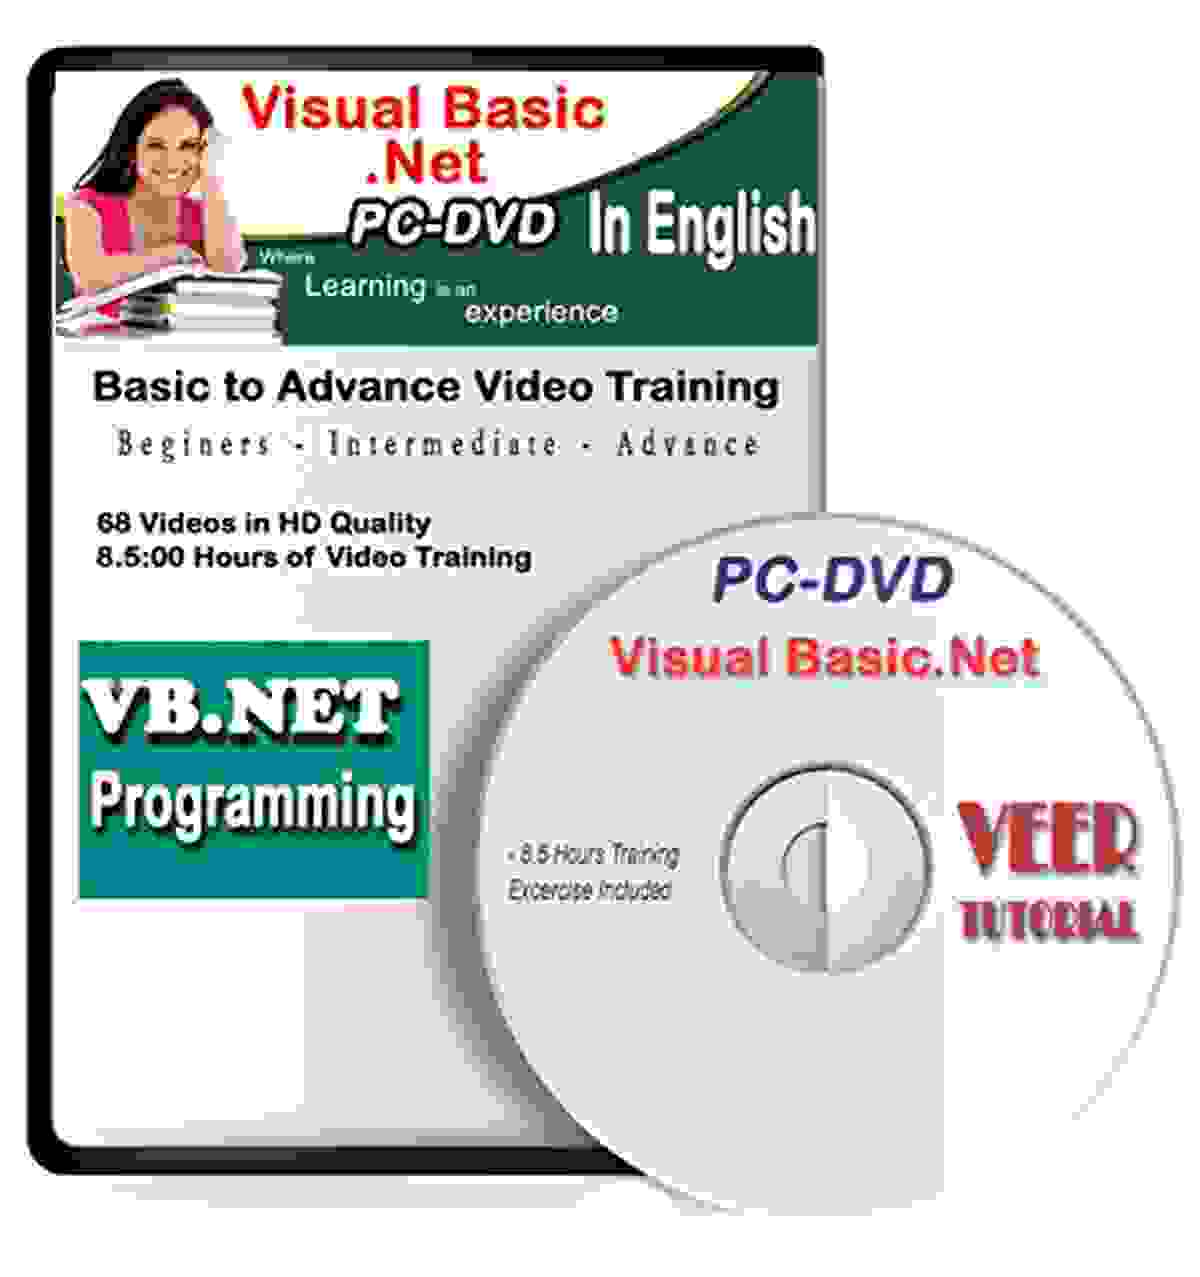 Visual Basic .Net Tutorial Video Training (98 Vidoes, 8.5 Hrs) Learning VB.net Programming Video